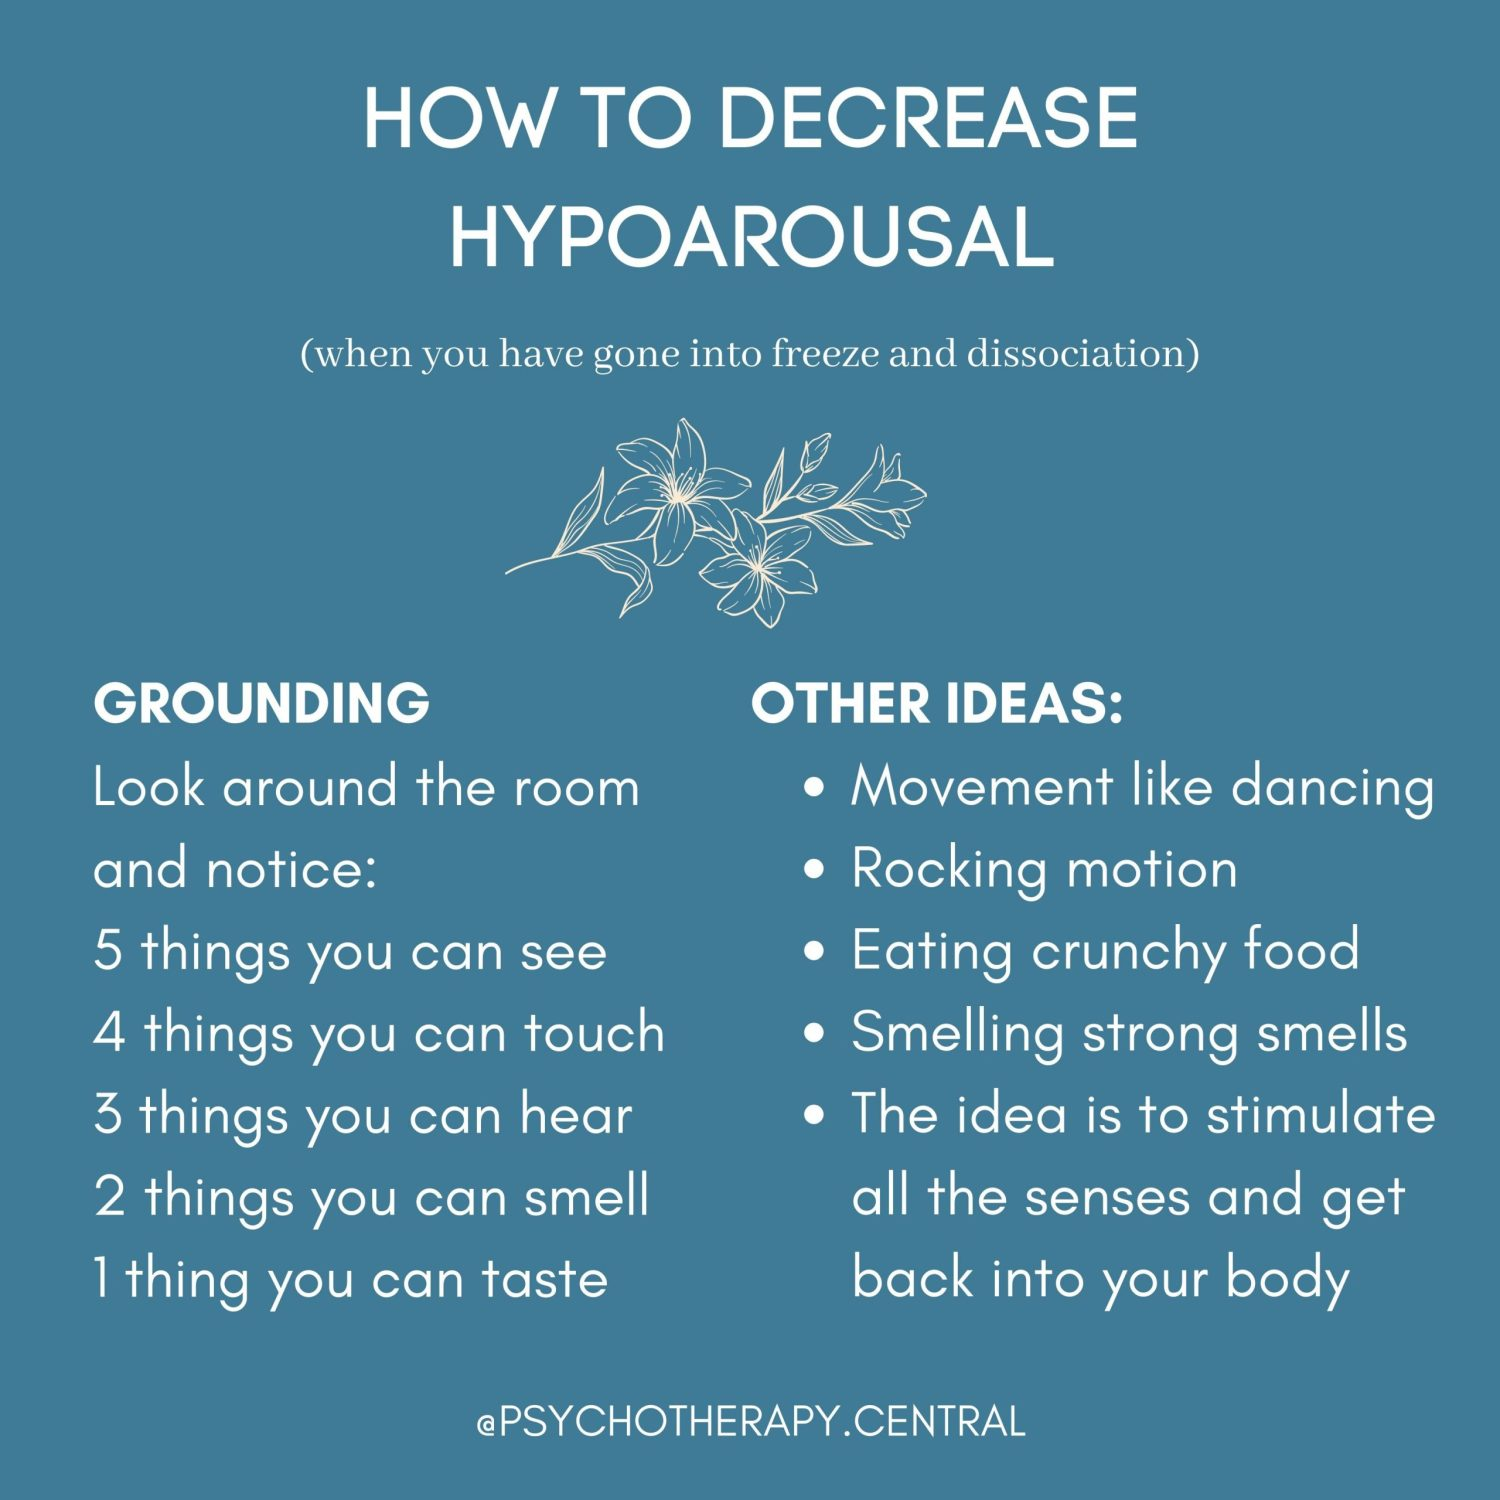 HOW TO DECREASE HYPOAROUSAL